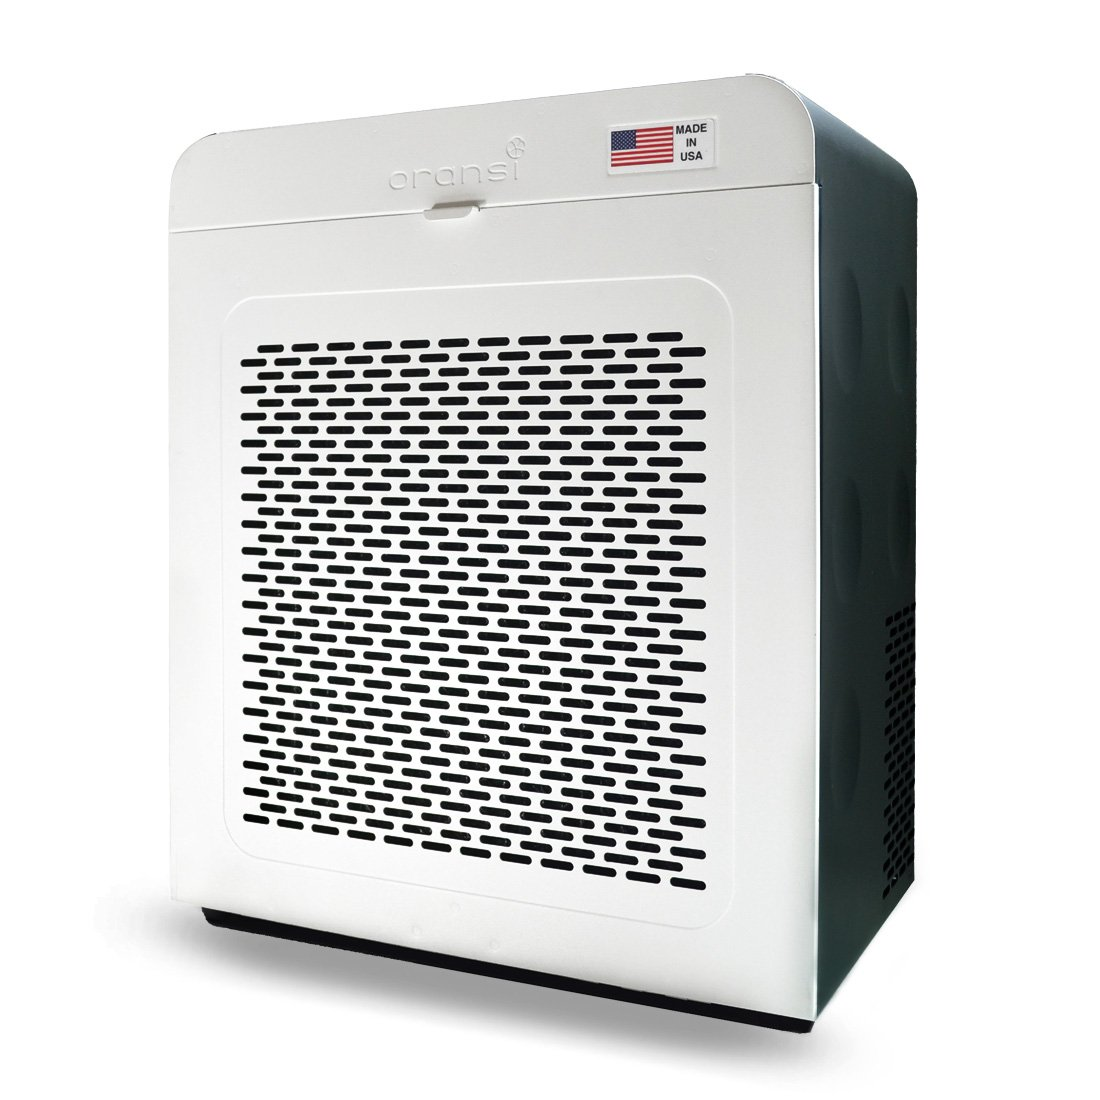 Oransi V HEPA Max Air Purifier_Oransi EJ120 HEPA Air Purifier with Carbon Filter, White/Black